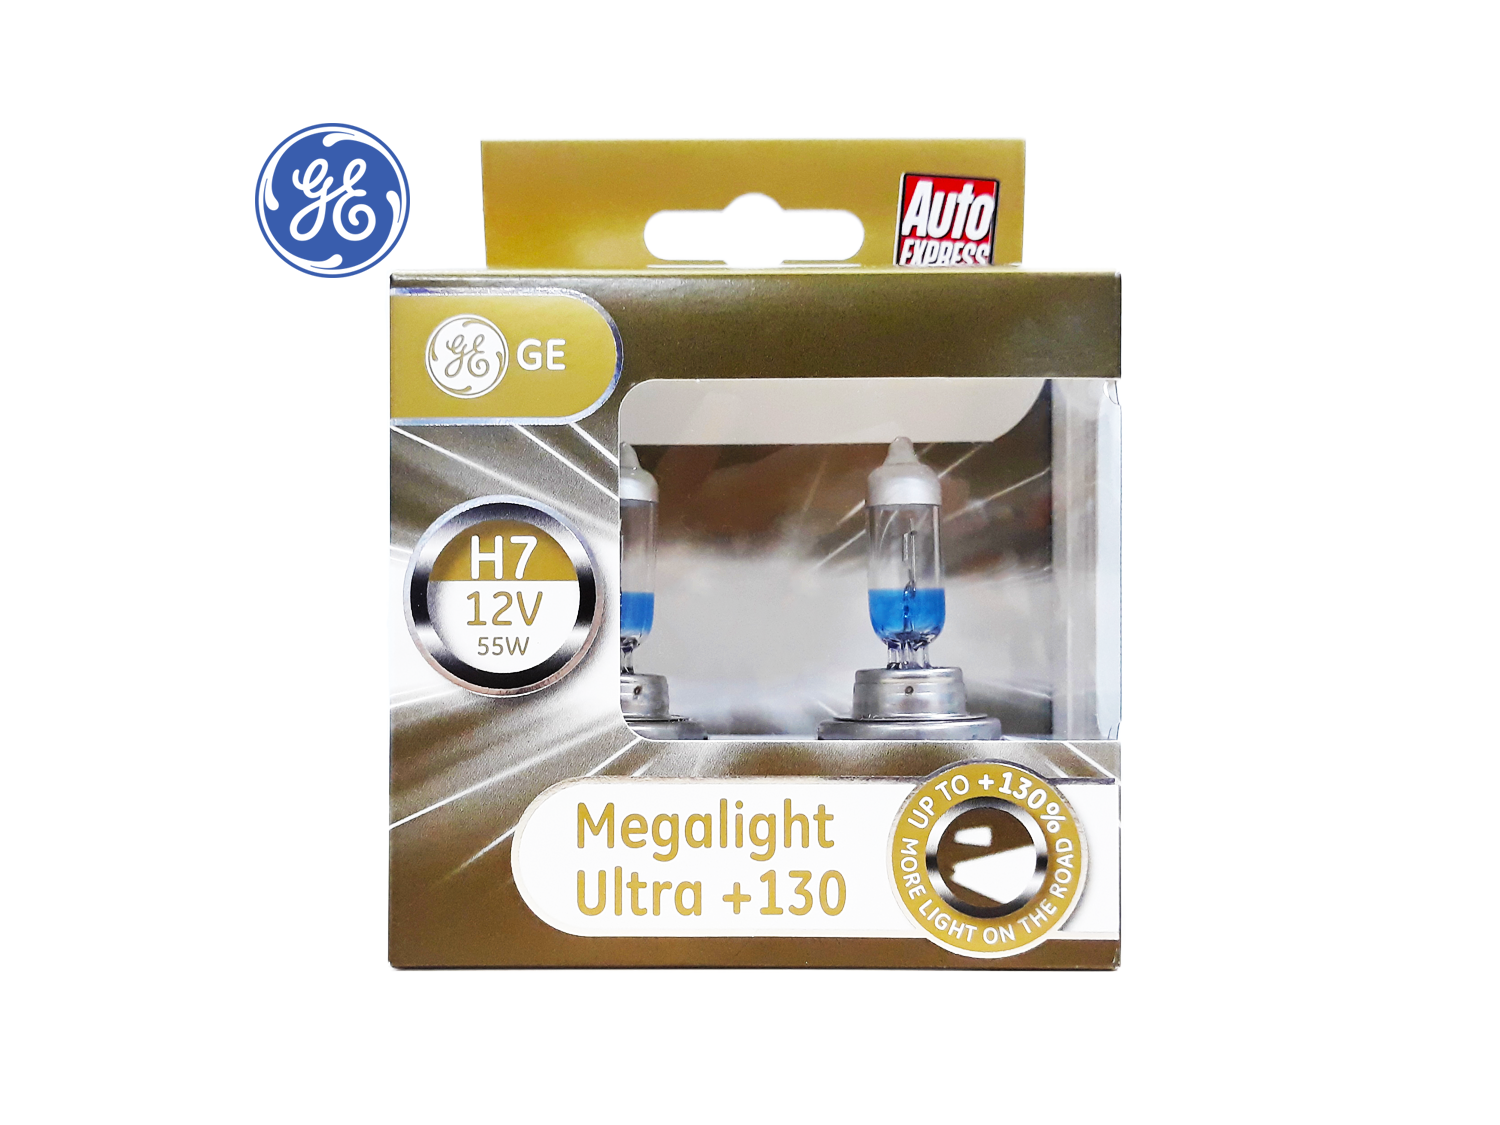 GE H7 +130% Megalight Ultra Head lamp ; SKU: 93039912